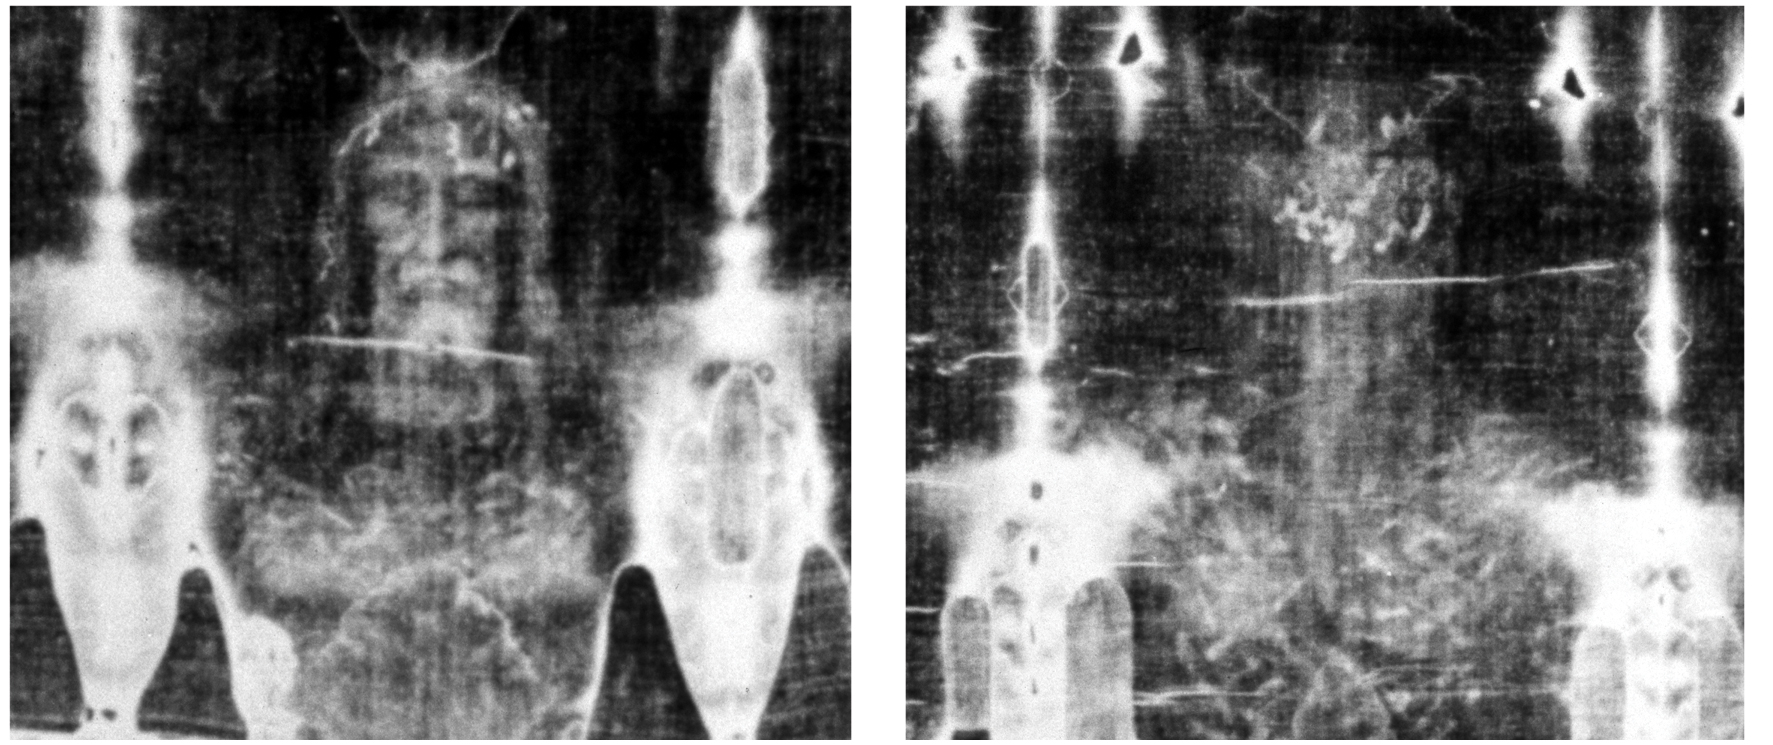 Unraveling the Shroud of Turin Mystery (PODCAST)